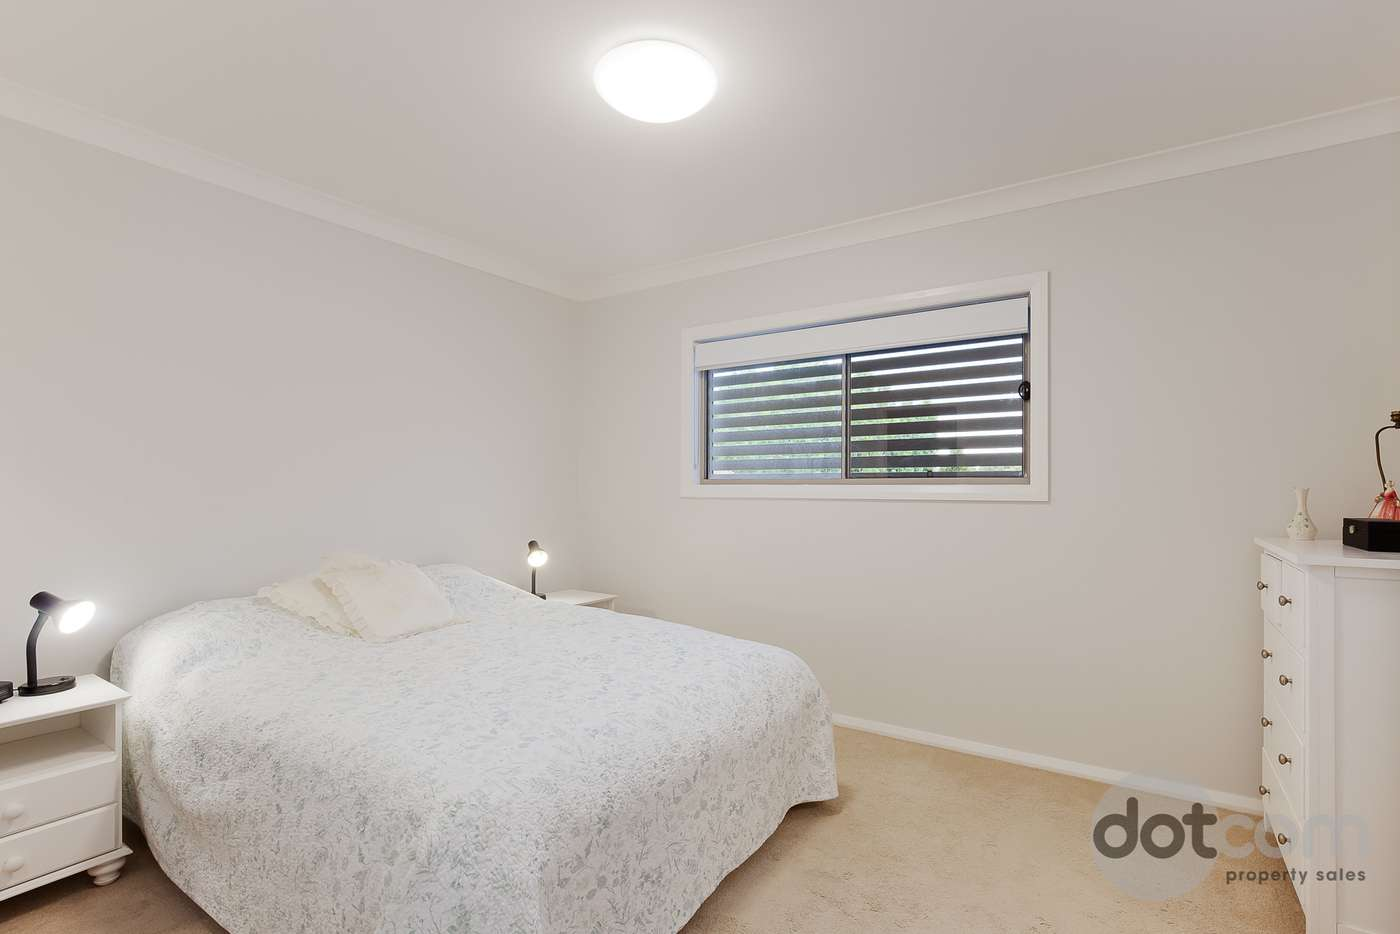 Fifth view of Homely apartment listing, 3/3 Kenibea Avenue, Kahibah NSW 2290